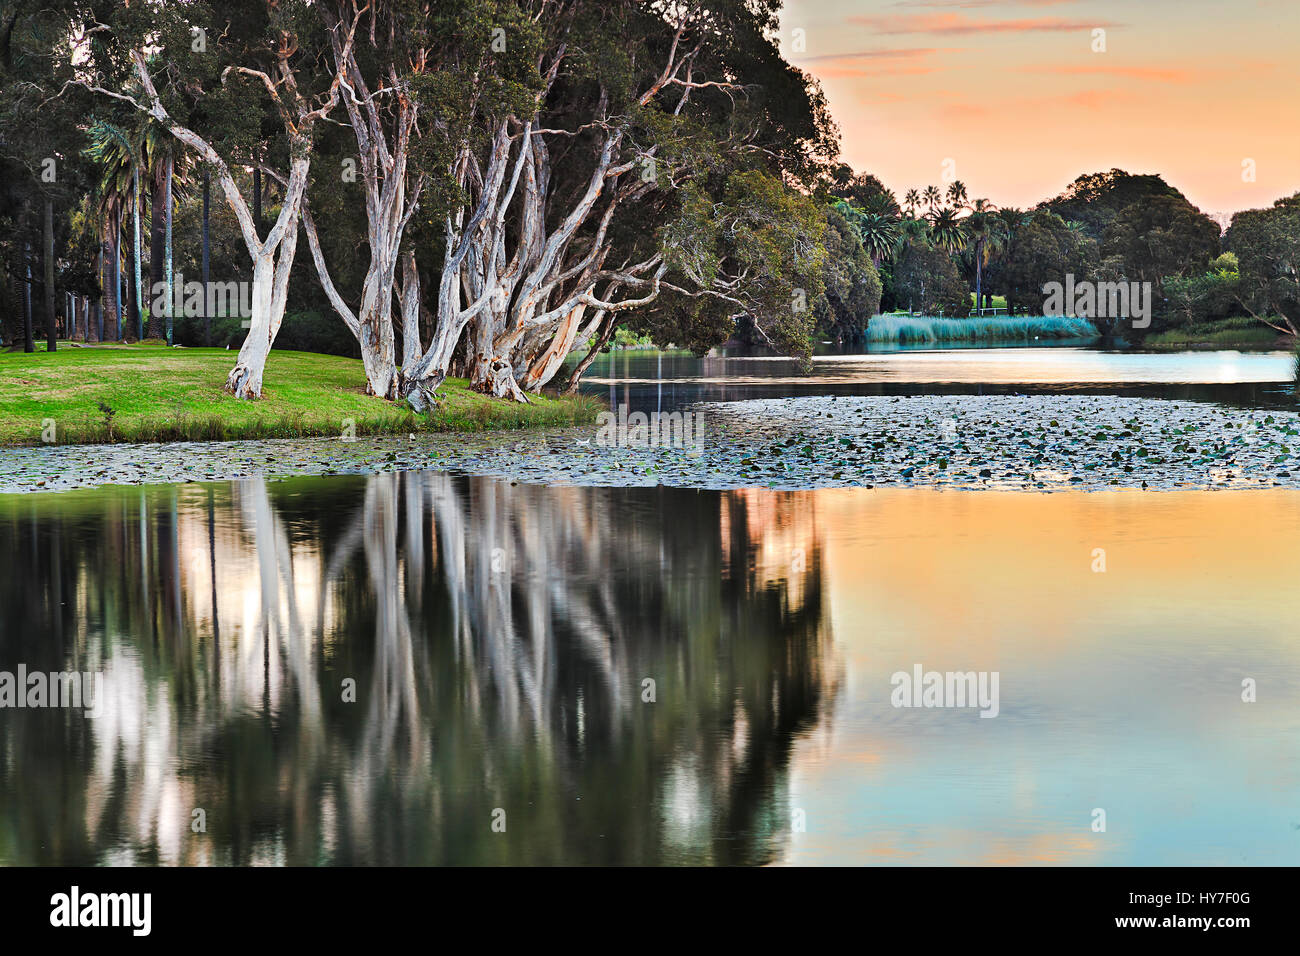 Sydney centennial park still water of pond and surrounding trees with paperbarks reflecting over water lilies at - Stock Image